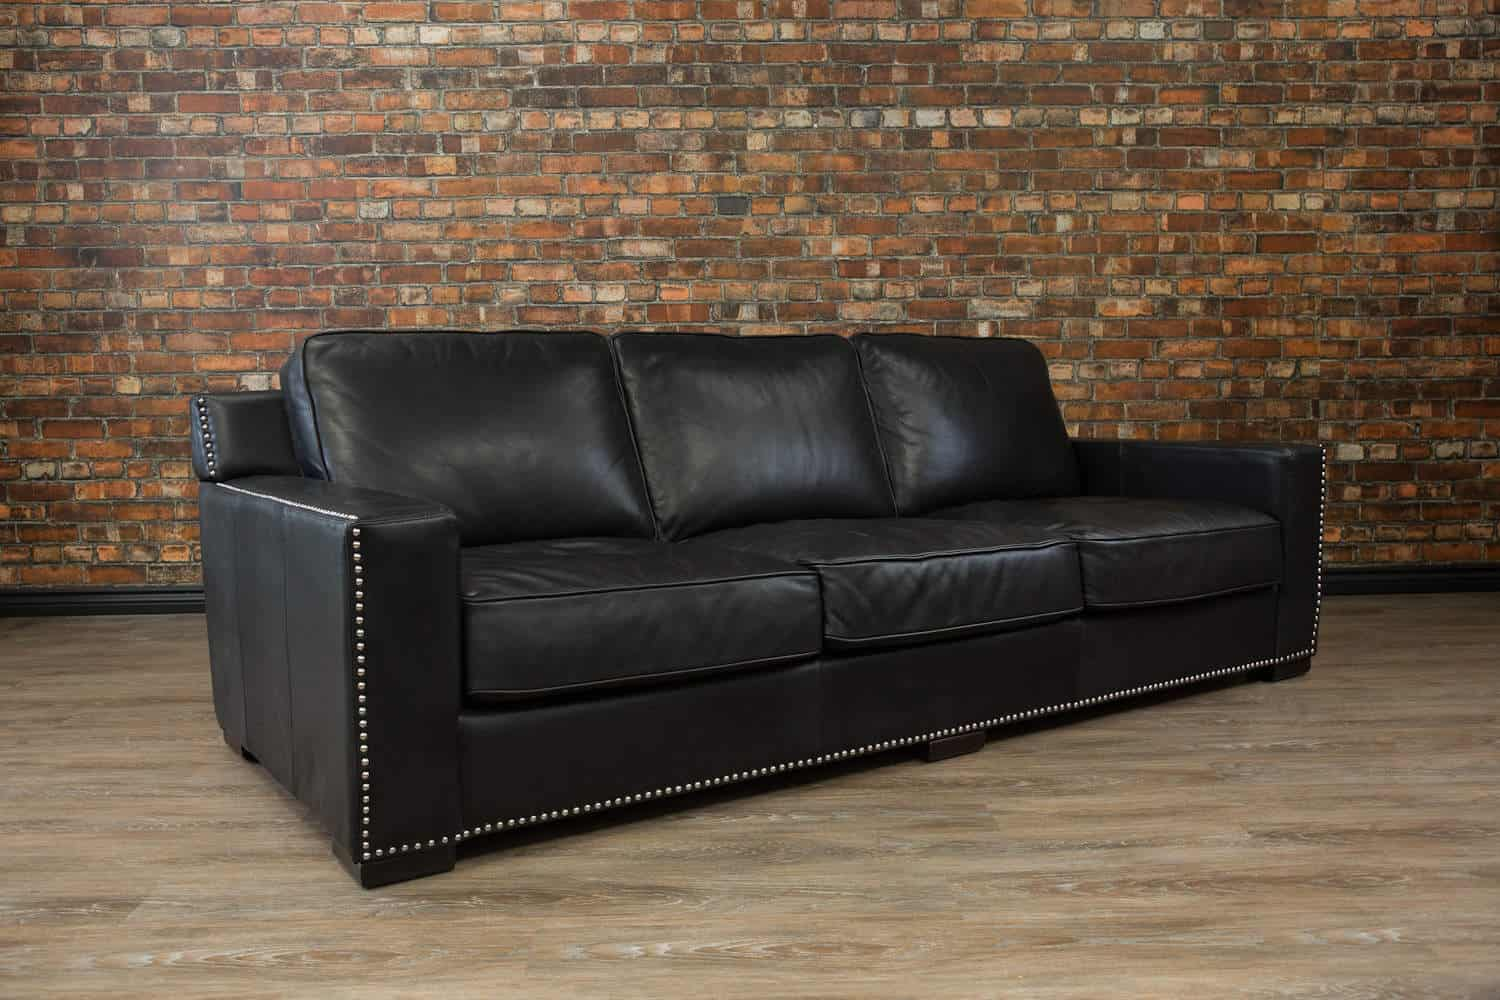 Collingwood Deep Seat Leather Sofa Canada S Boss Leather